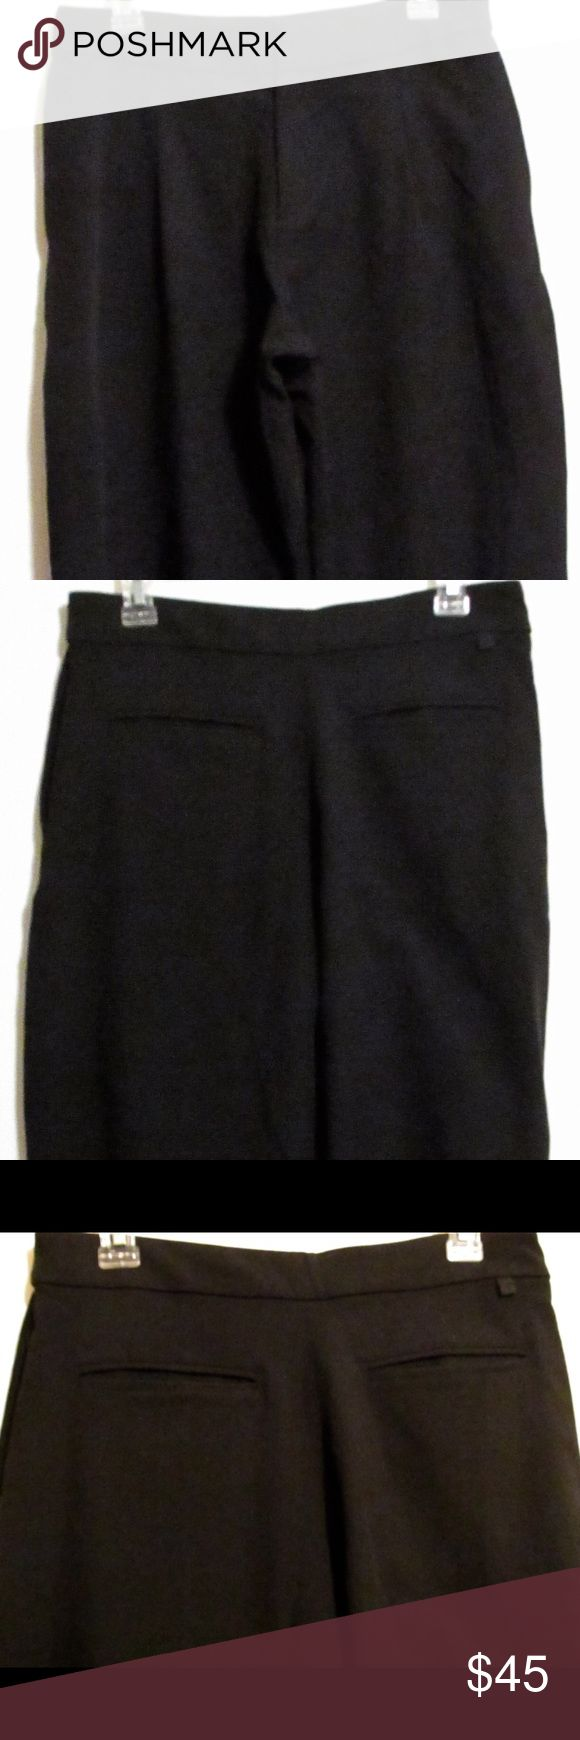 """Lululemon Black Dress Cropped Trousers Size 8 Rare find!  Lululemon dress trousers. Material is 93% nylon, 6% spandex, 1% polyester.  Measurements lying flat are waist 15.5"""", hips 21"""", rise 11.5"""", inseam 26.25"""".  No tips tears or stains. Features cuffed hems, side and back pockets, front zip fly, waist band without belt loops, and front pleats. lululemon athletica Pants Ankle & Cropped"""